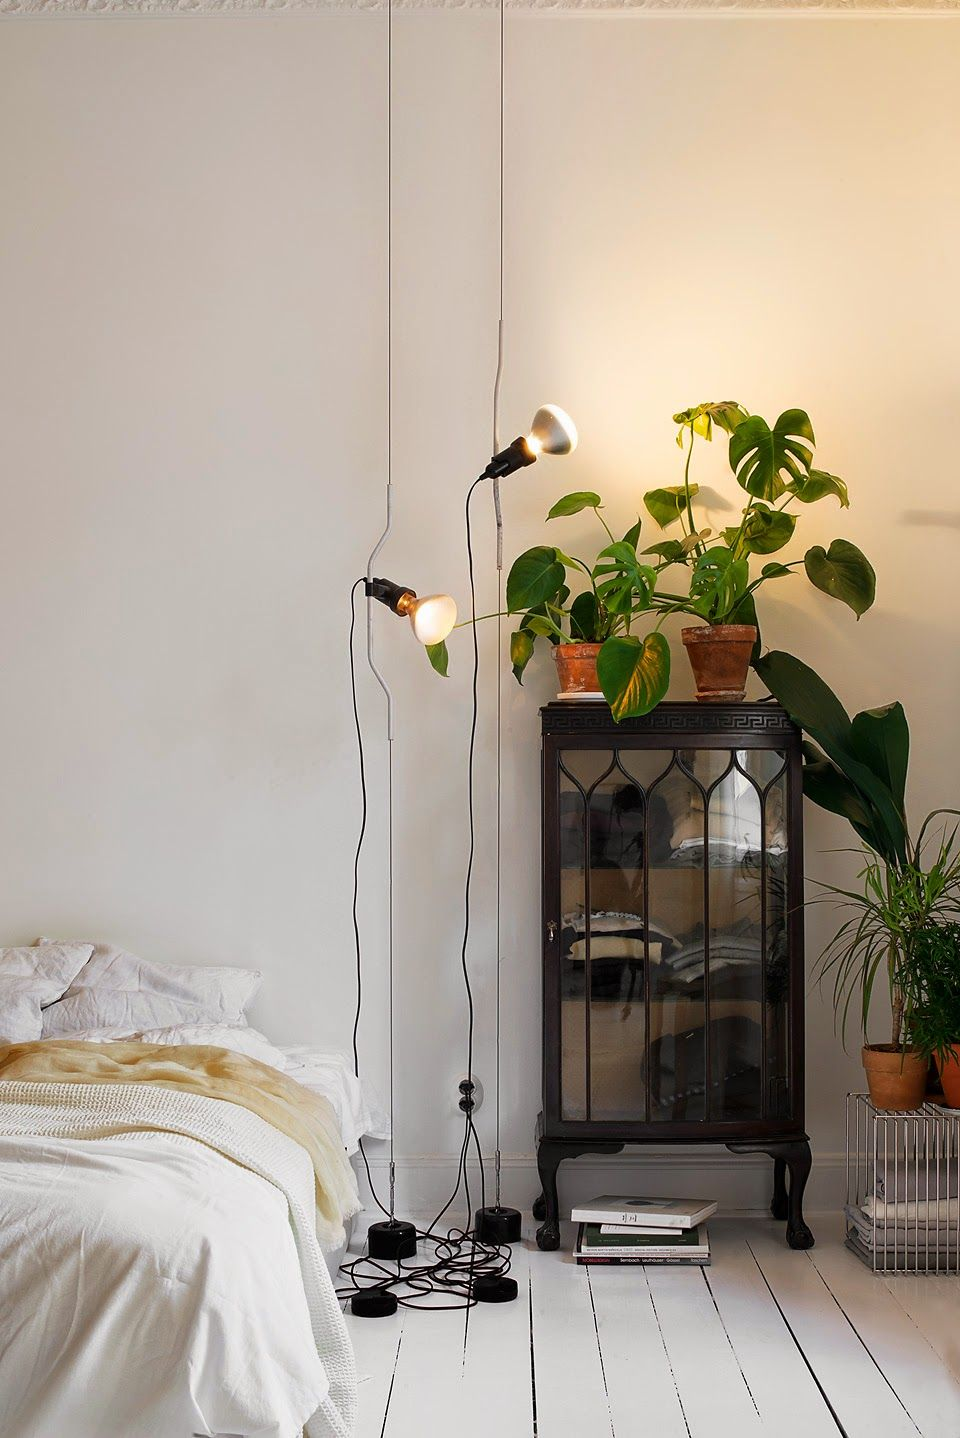 bedroom decor ideas: 7 unique ways to decorate your bedside | the